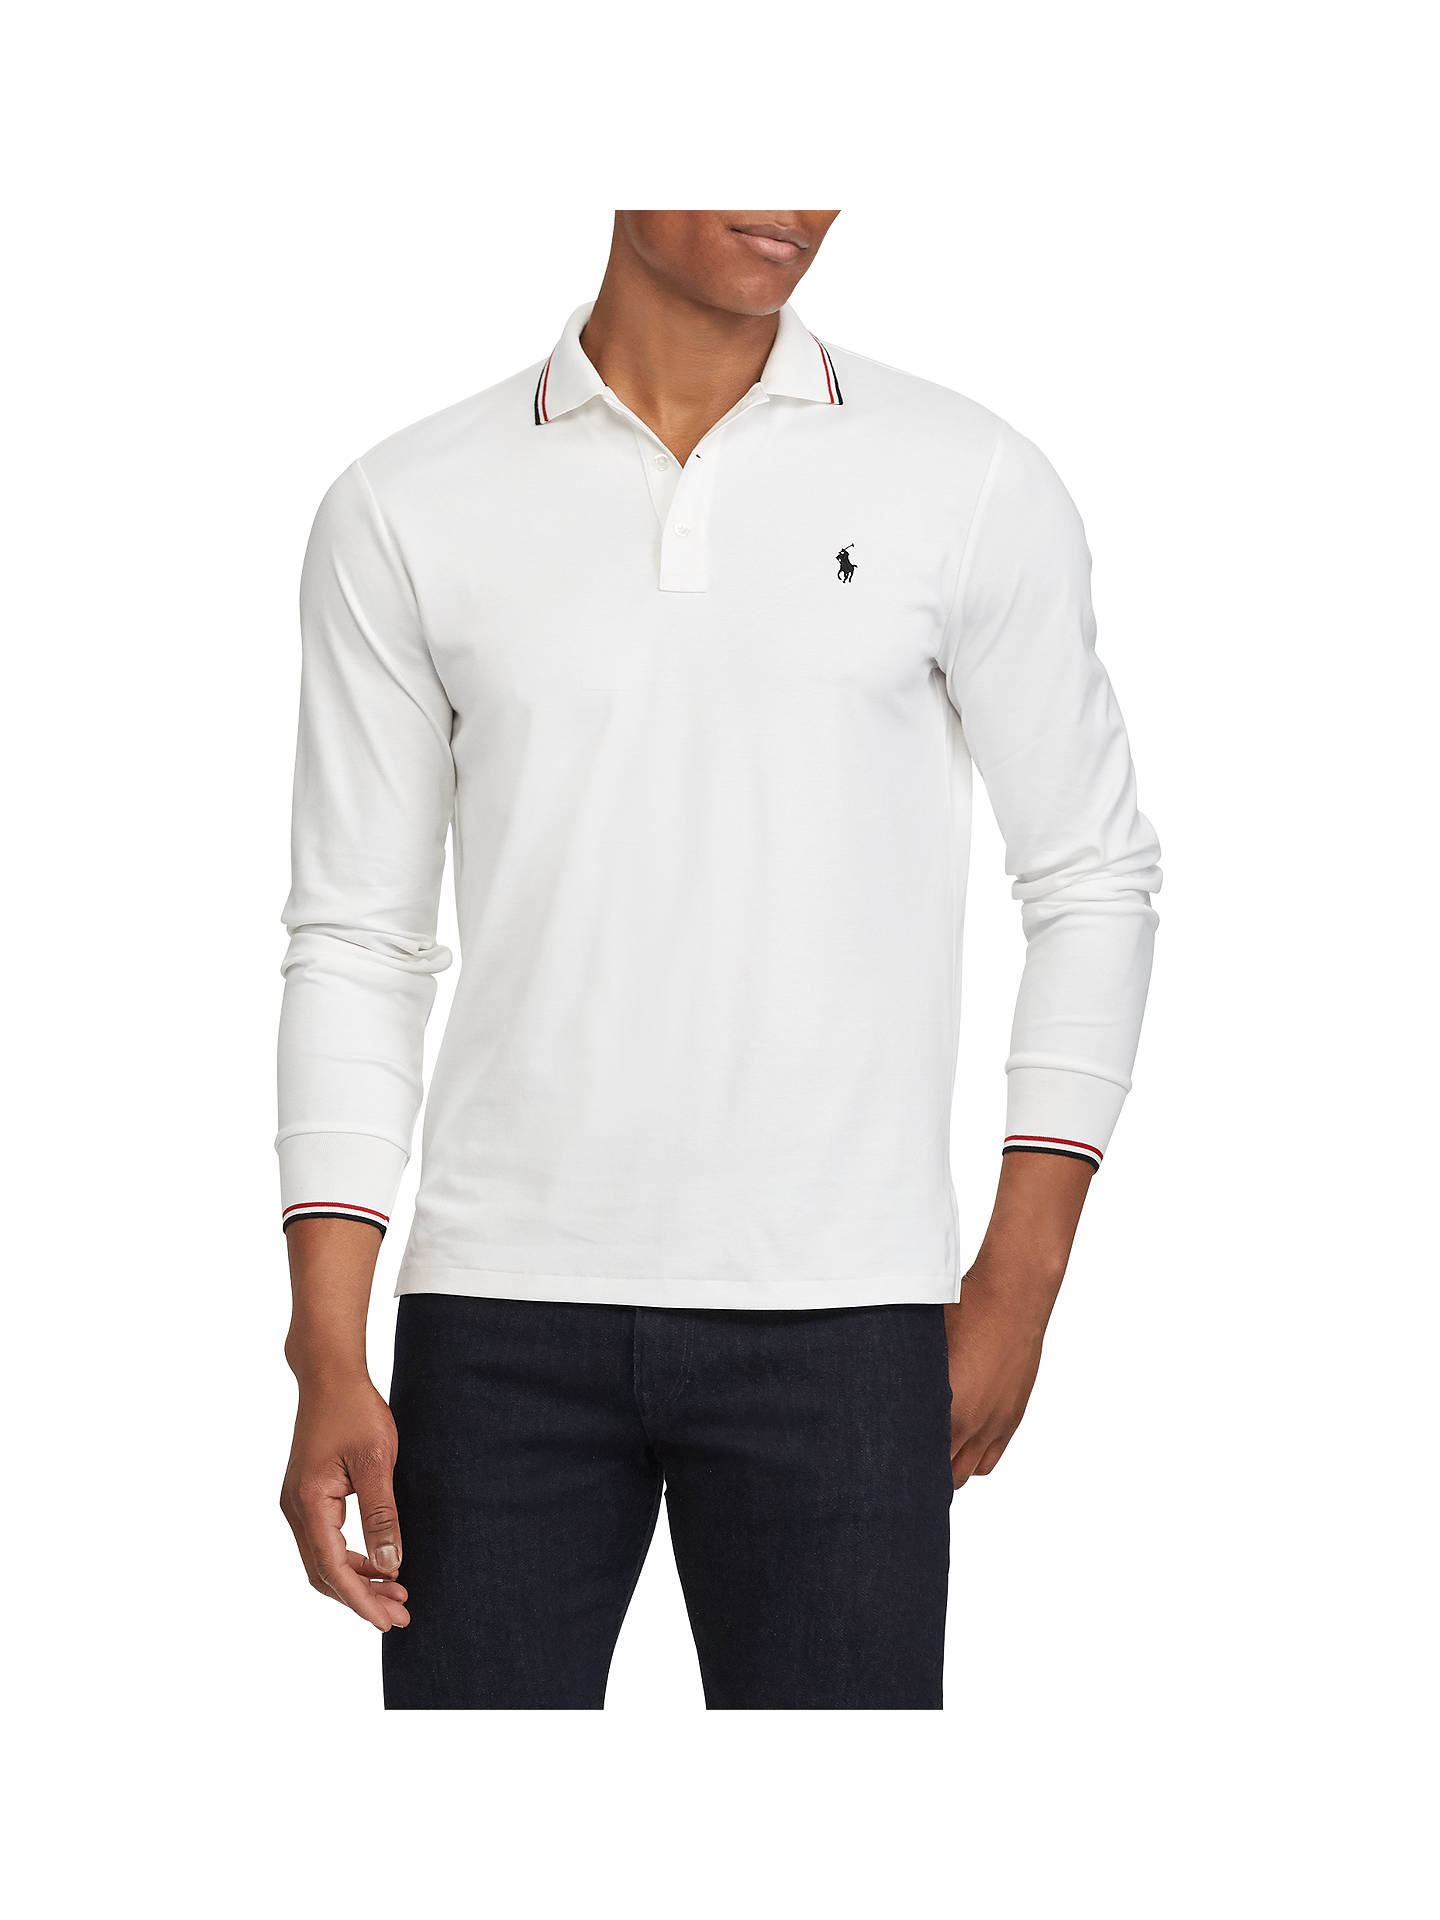 Ralph Lauren Long Sleeve Polo Shirt White Rldm